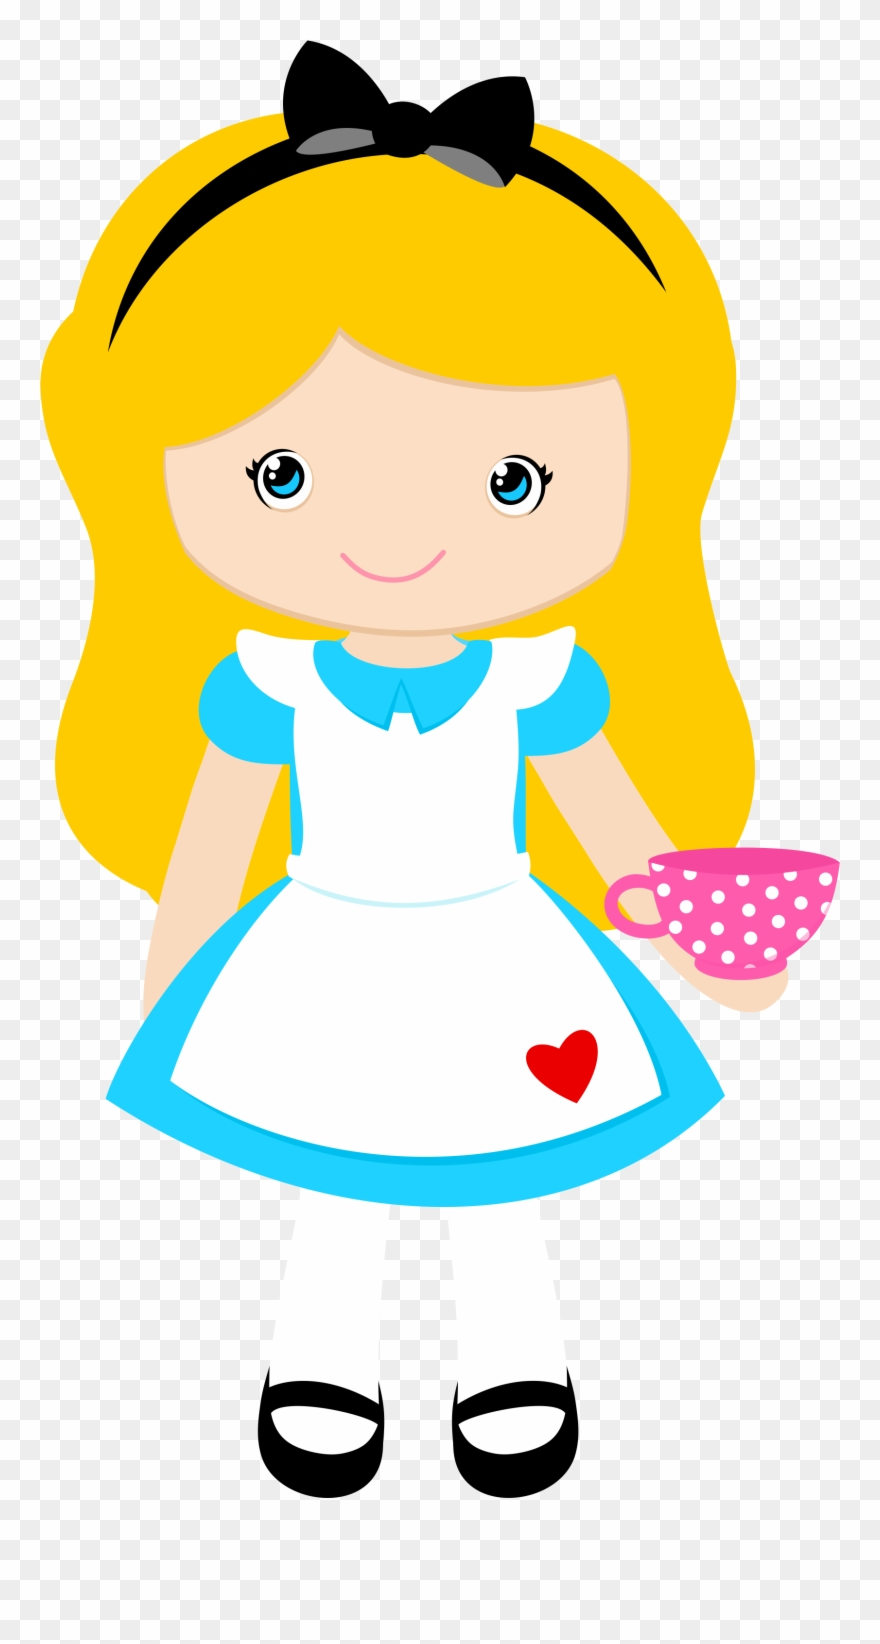 Alice In Wonderland Clipart, Alice In Wonderland Party.